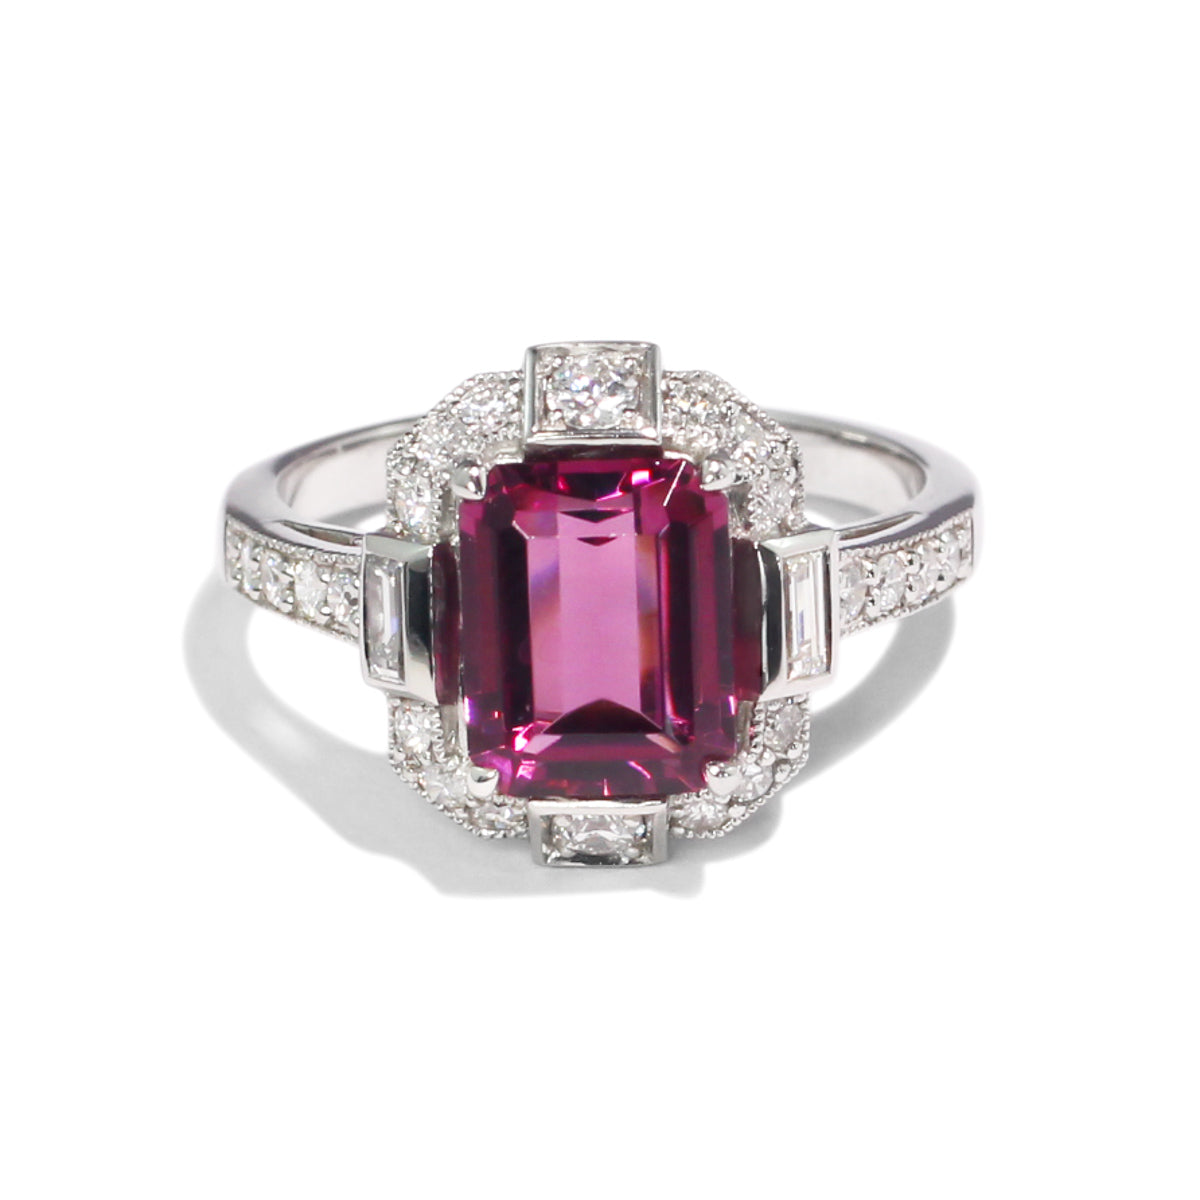 The Helo Vintage Tourmaline & Diamond Ring